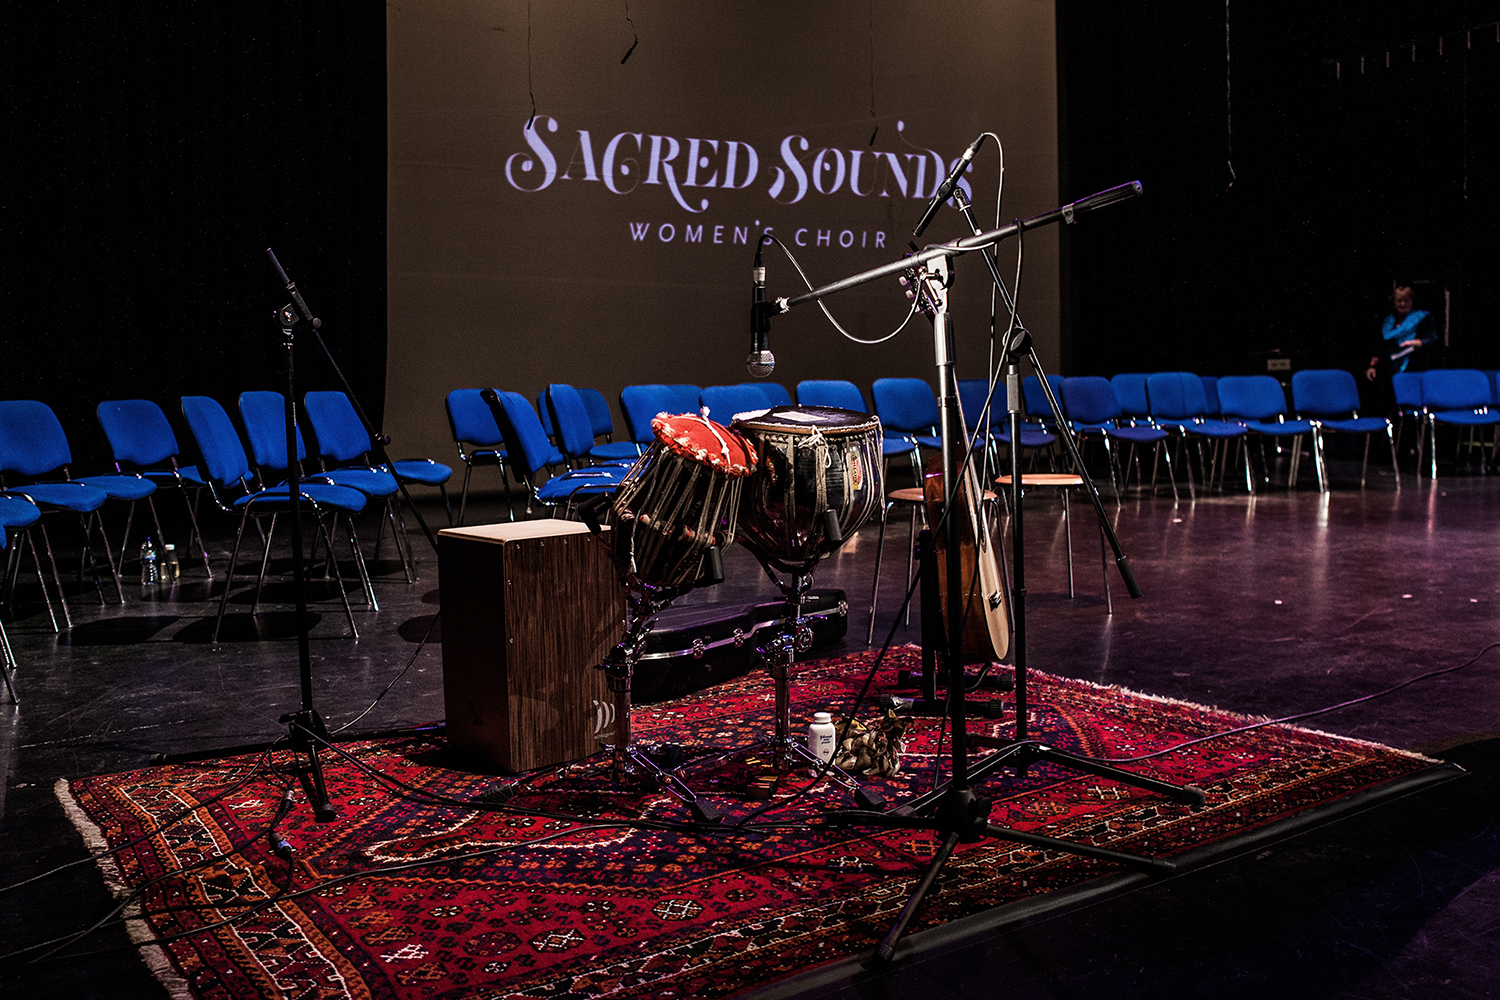 Setting up Renu Hossain's equipment for the Sacred Sounds Women's Choir Showcase Event Photo: Michela De Rossi